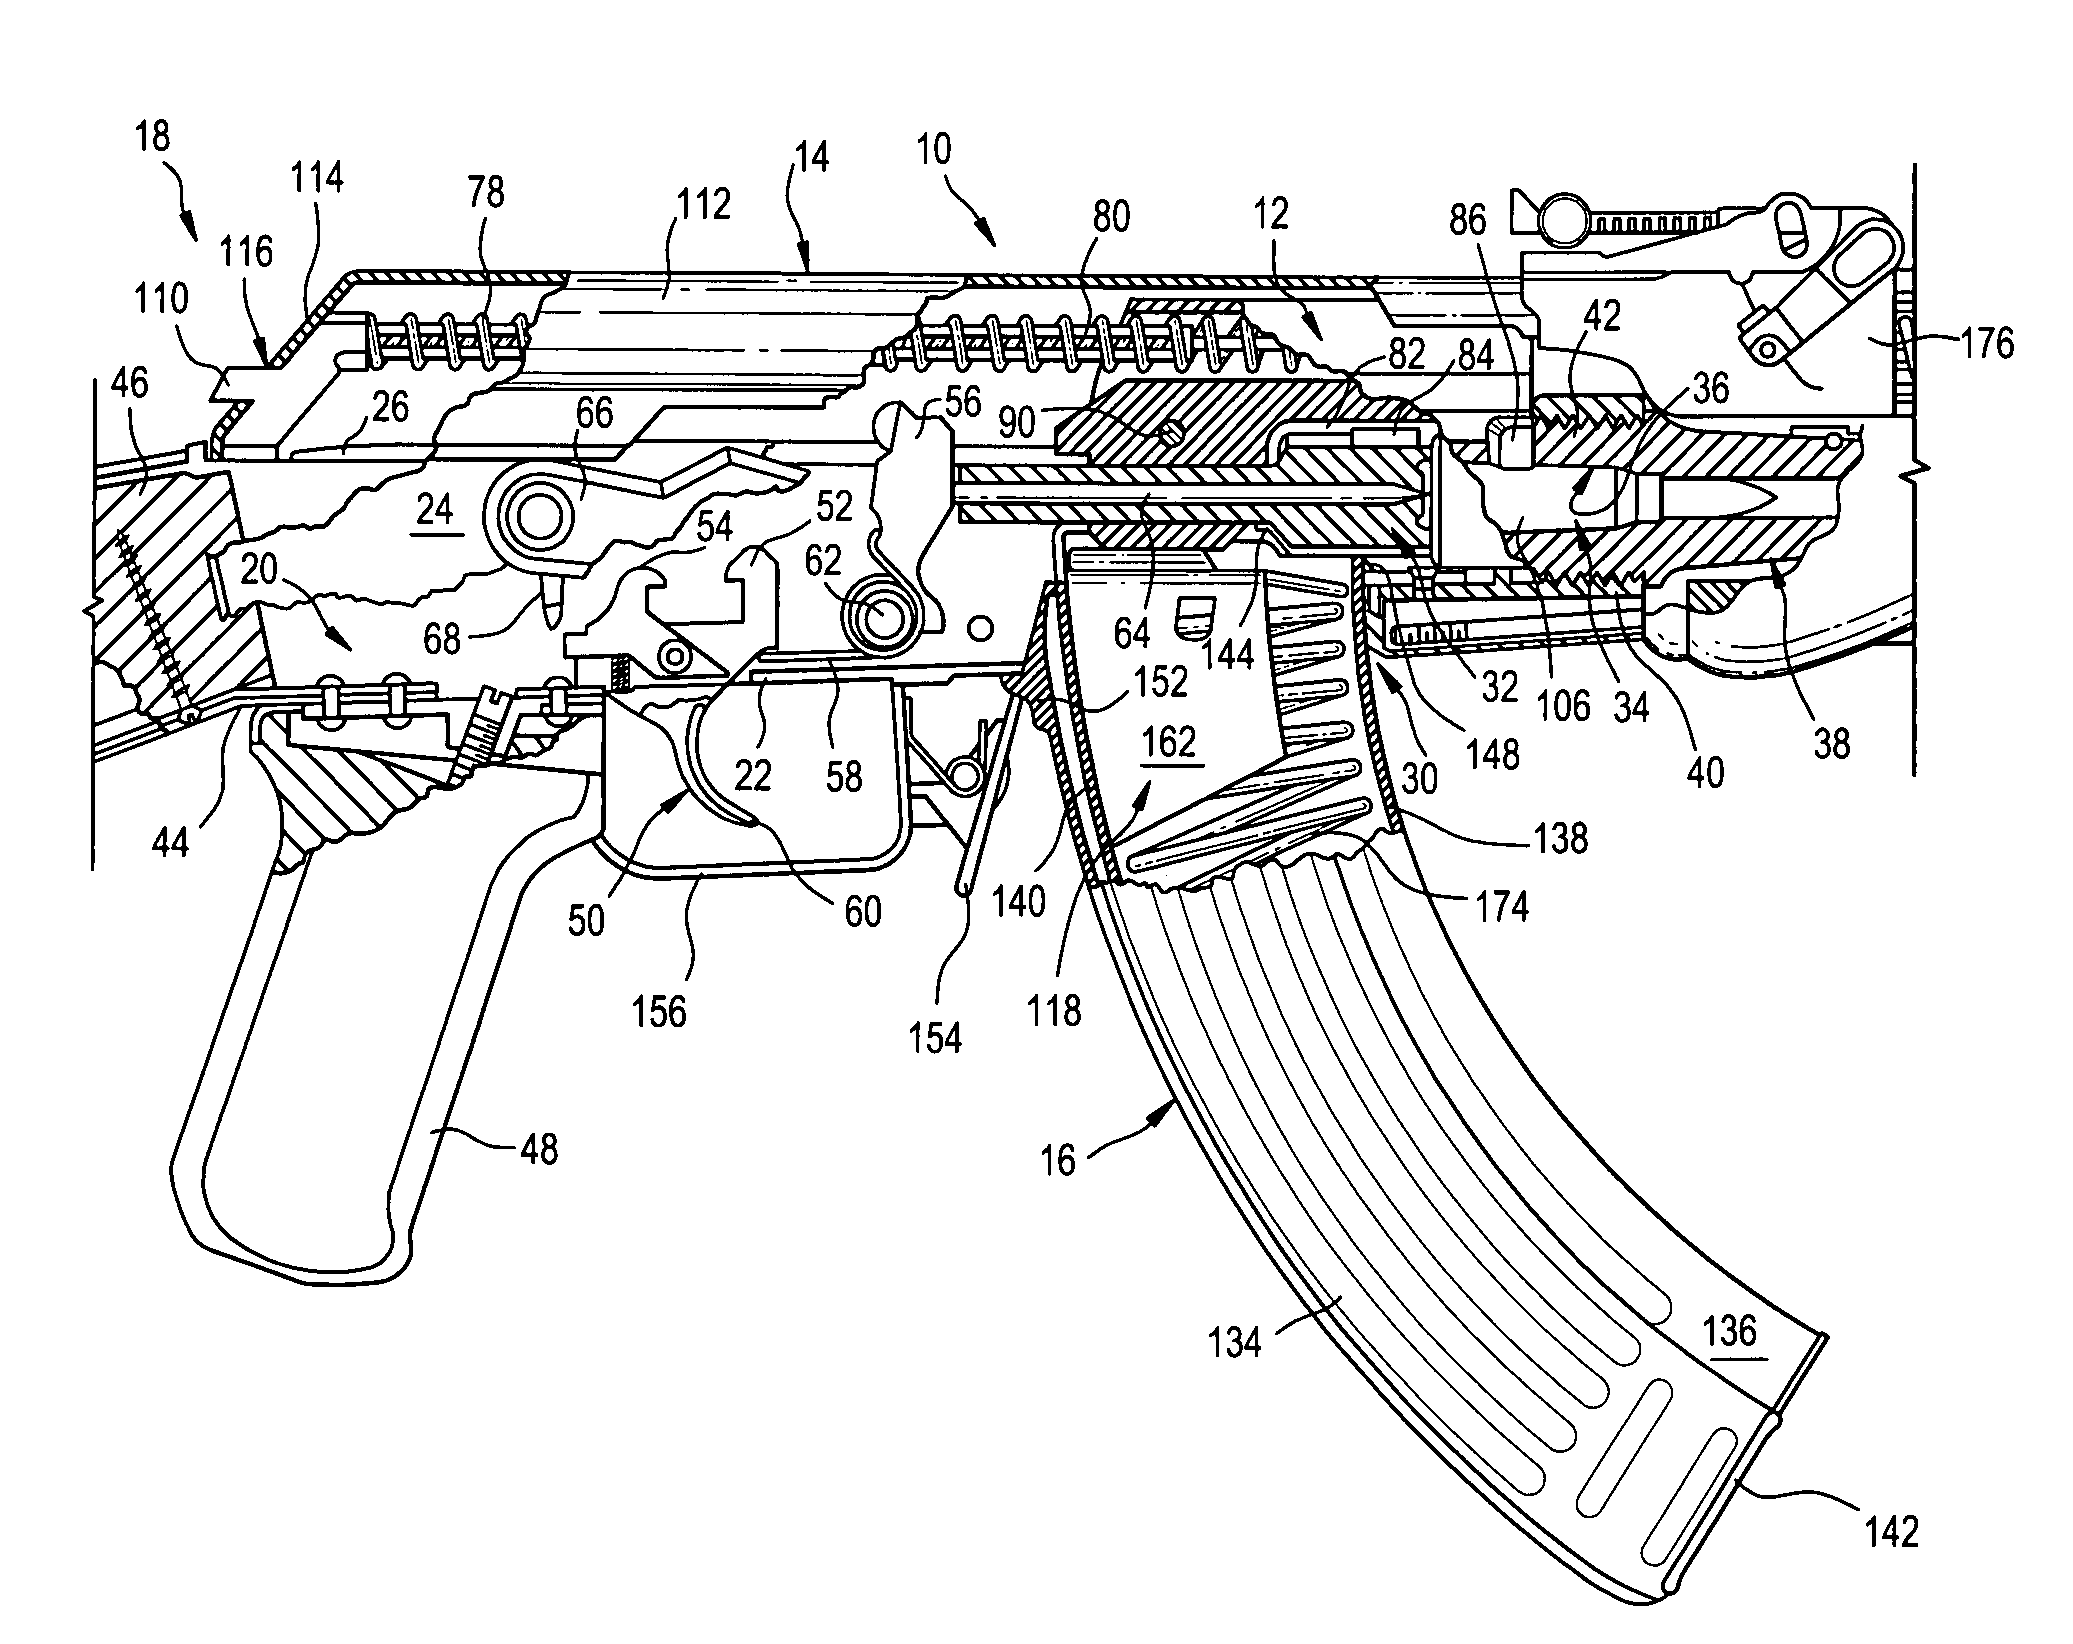 hight resolution of ar 15 exploded view pdf download bing images